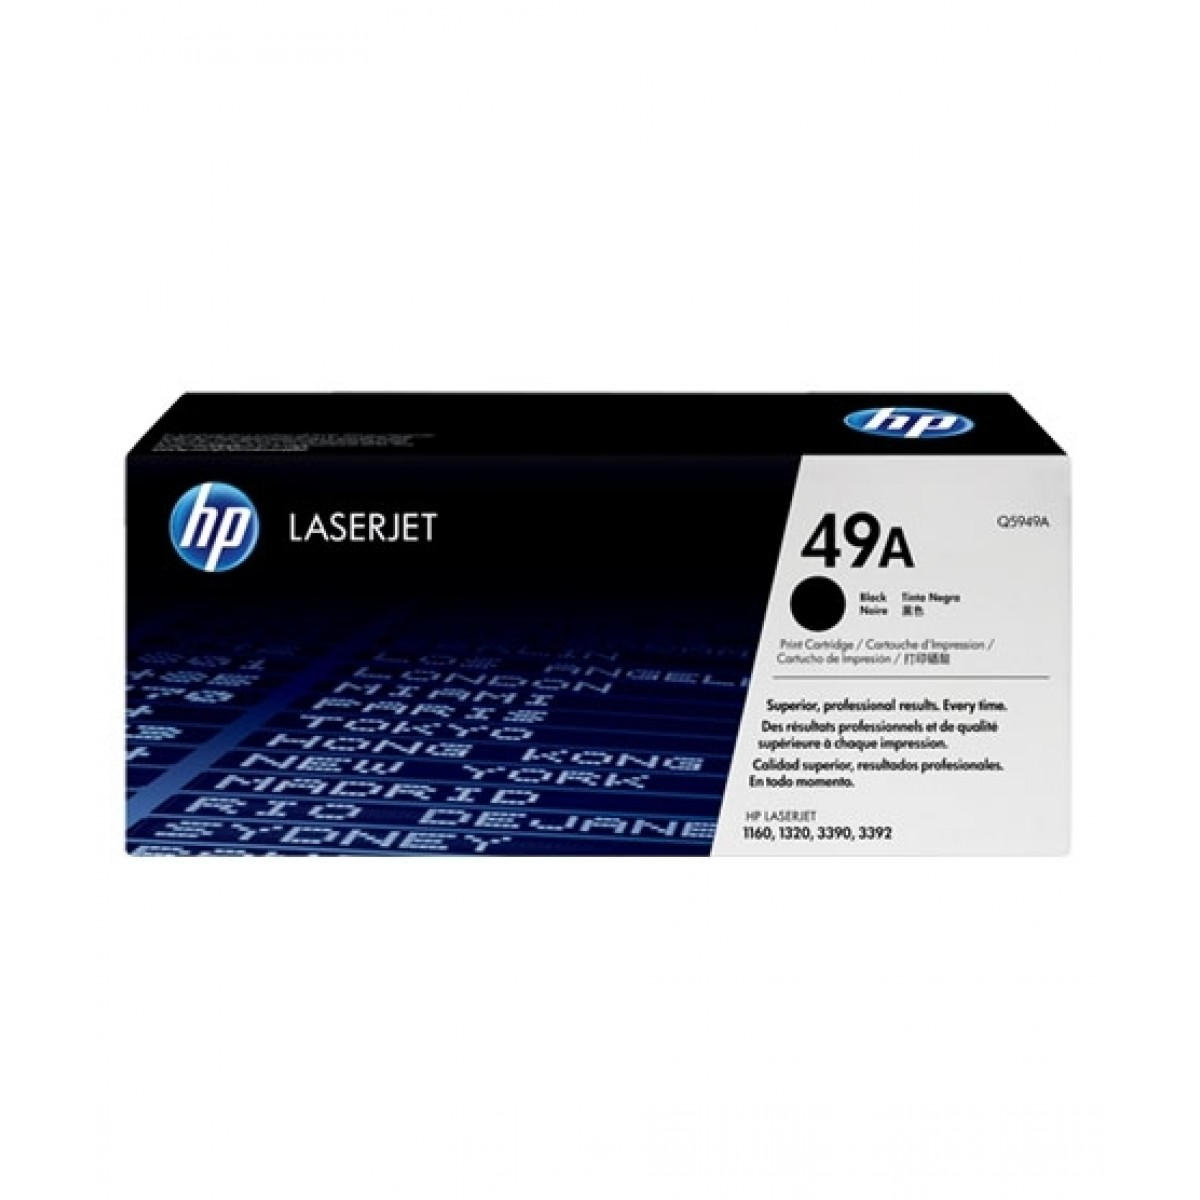 HP 49A LaserJet Toner Cartridge Black (Q5949A)